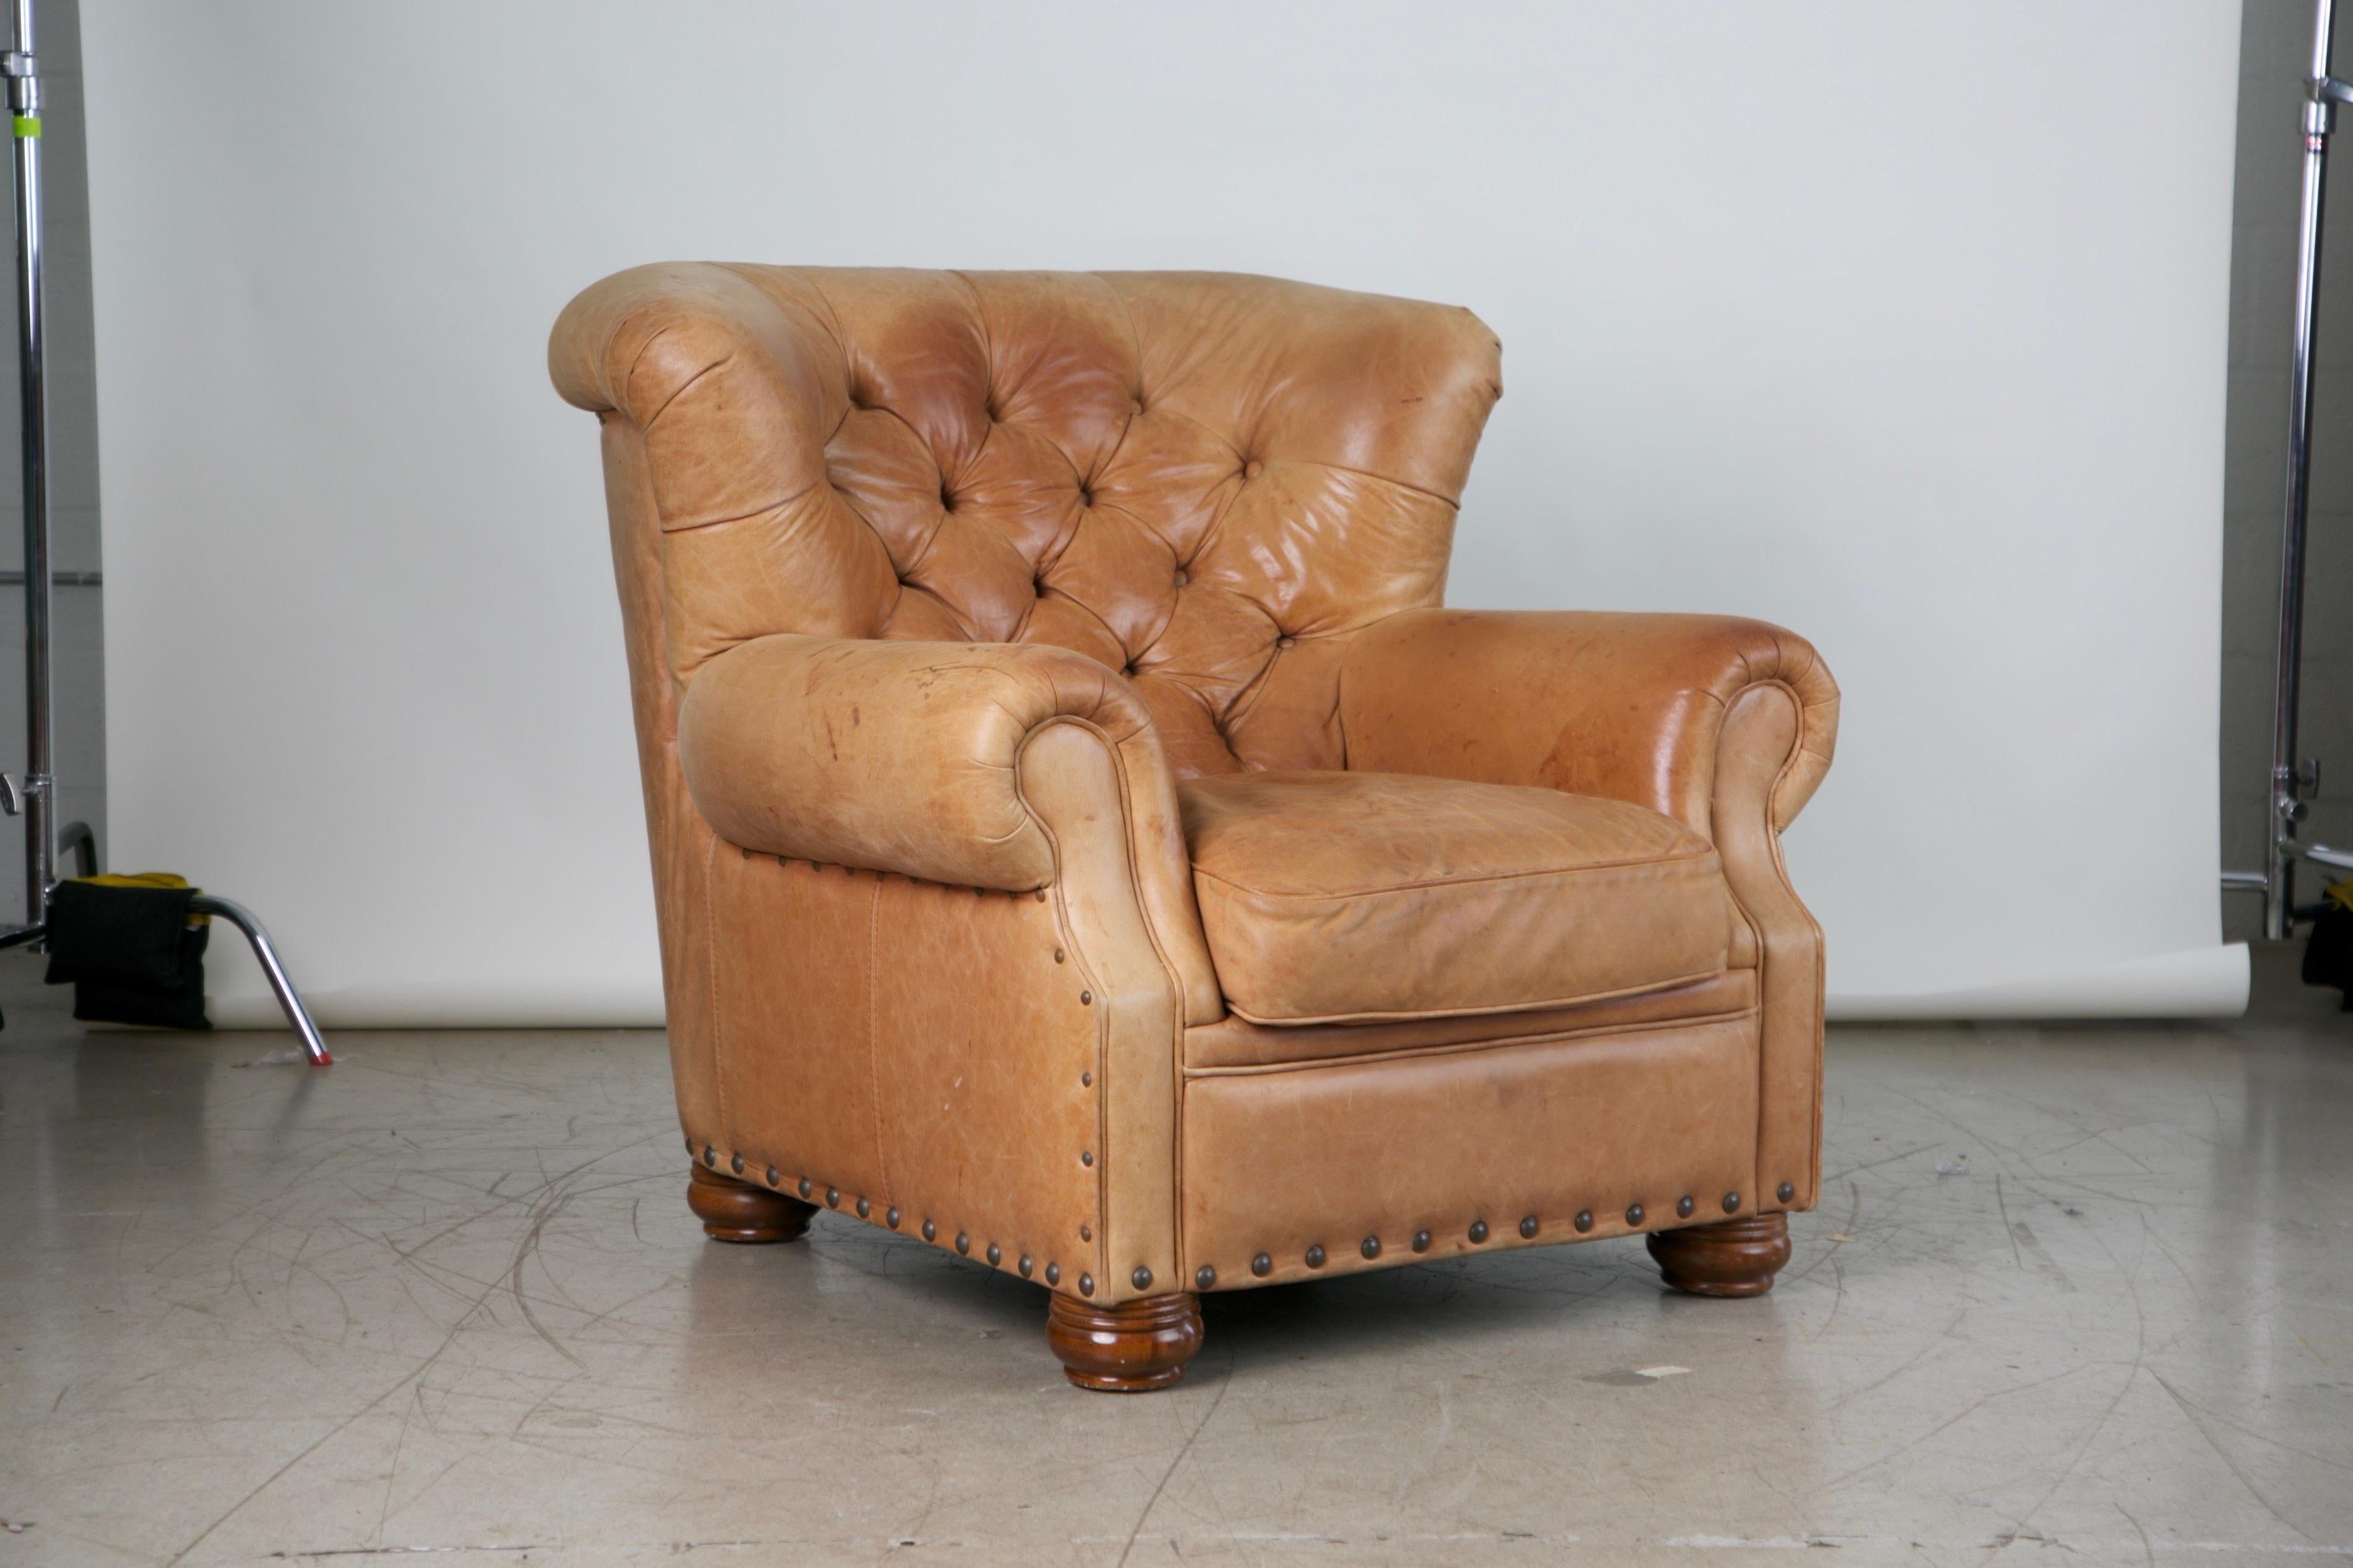 Modern Tufted Leather Armchair And Ottoman In The Style Of Ralph Lauren For  Sale